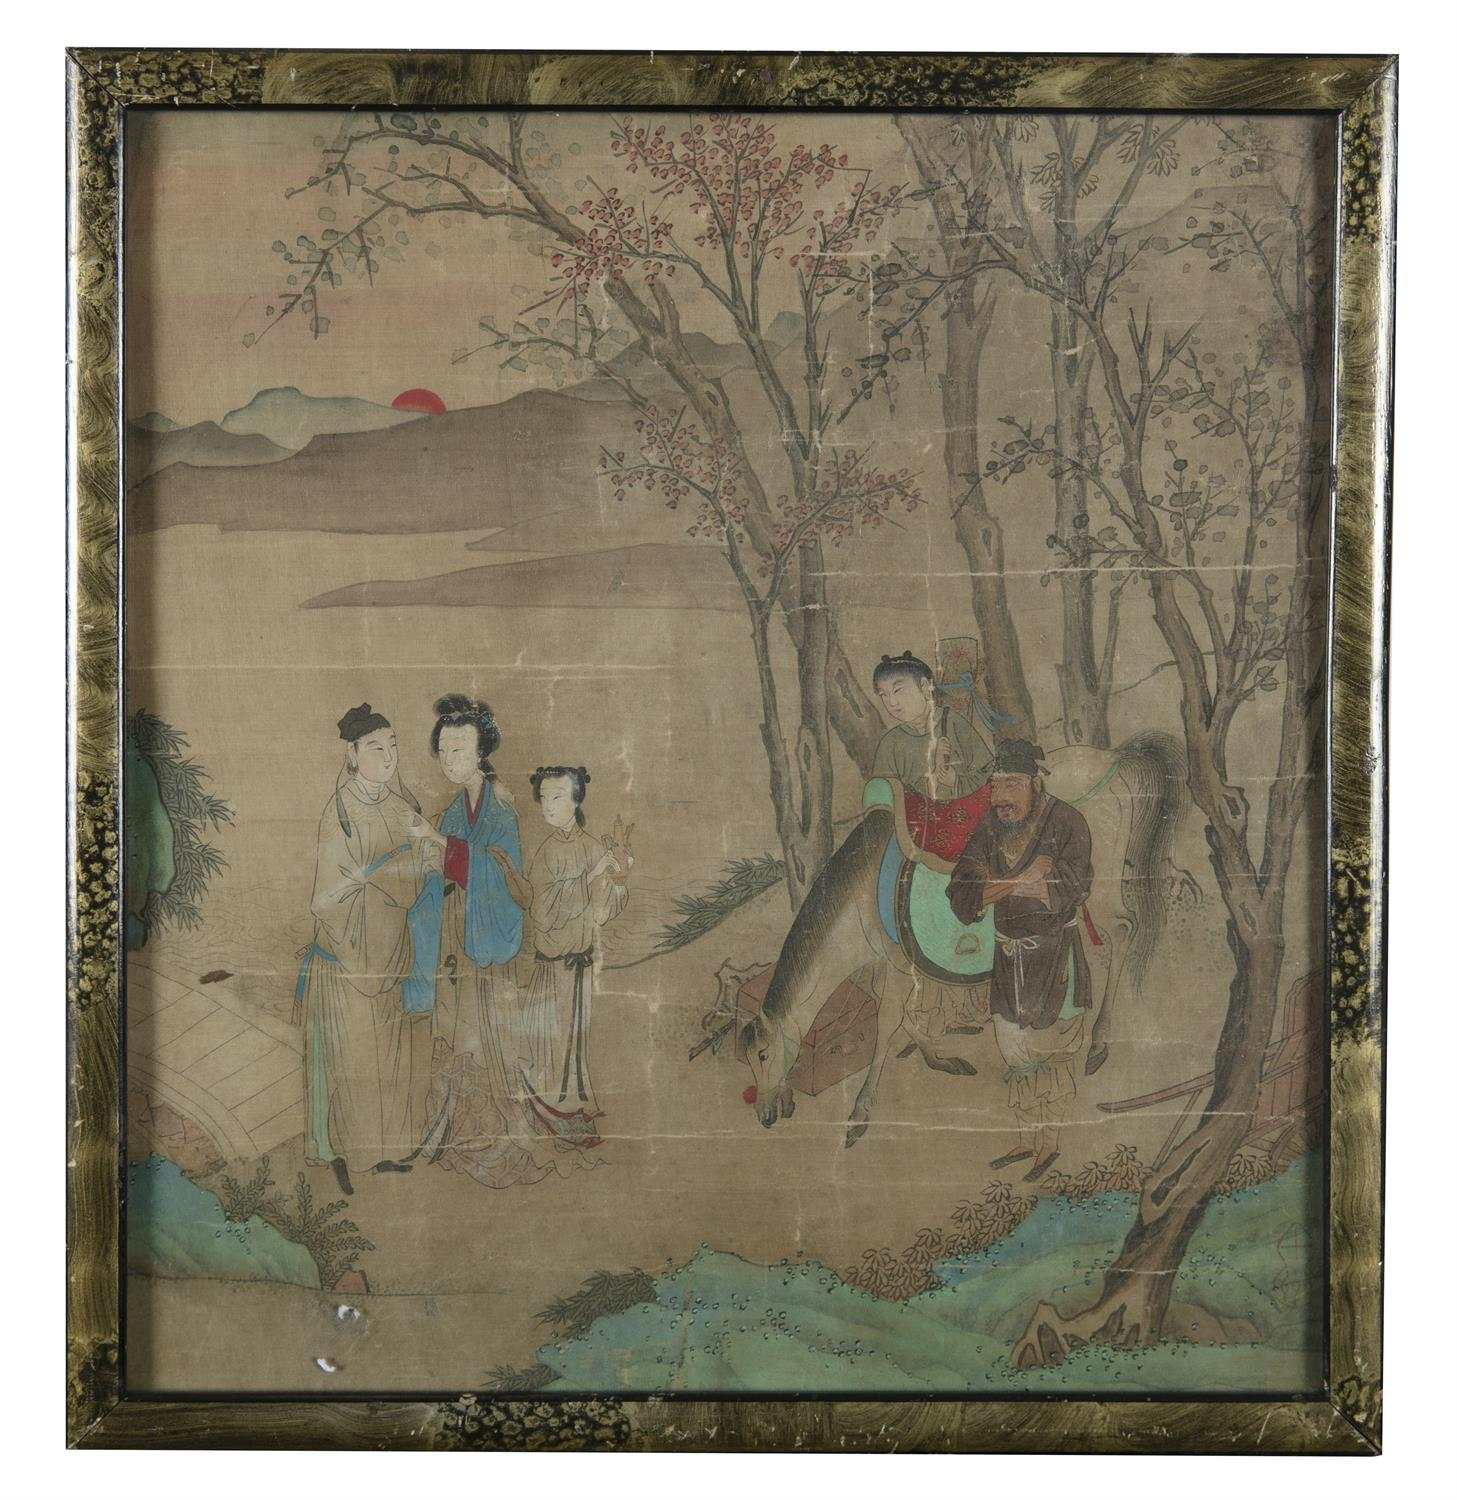 CHINESE SCHOOL, SEAL OF QIU YING 仇英 (1494-1552) Lady and attendants in a landscape at dawn - Image 10 of 10